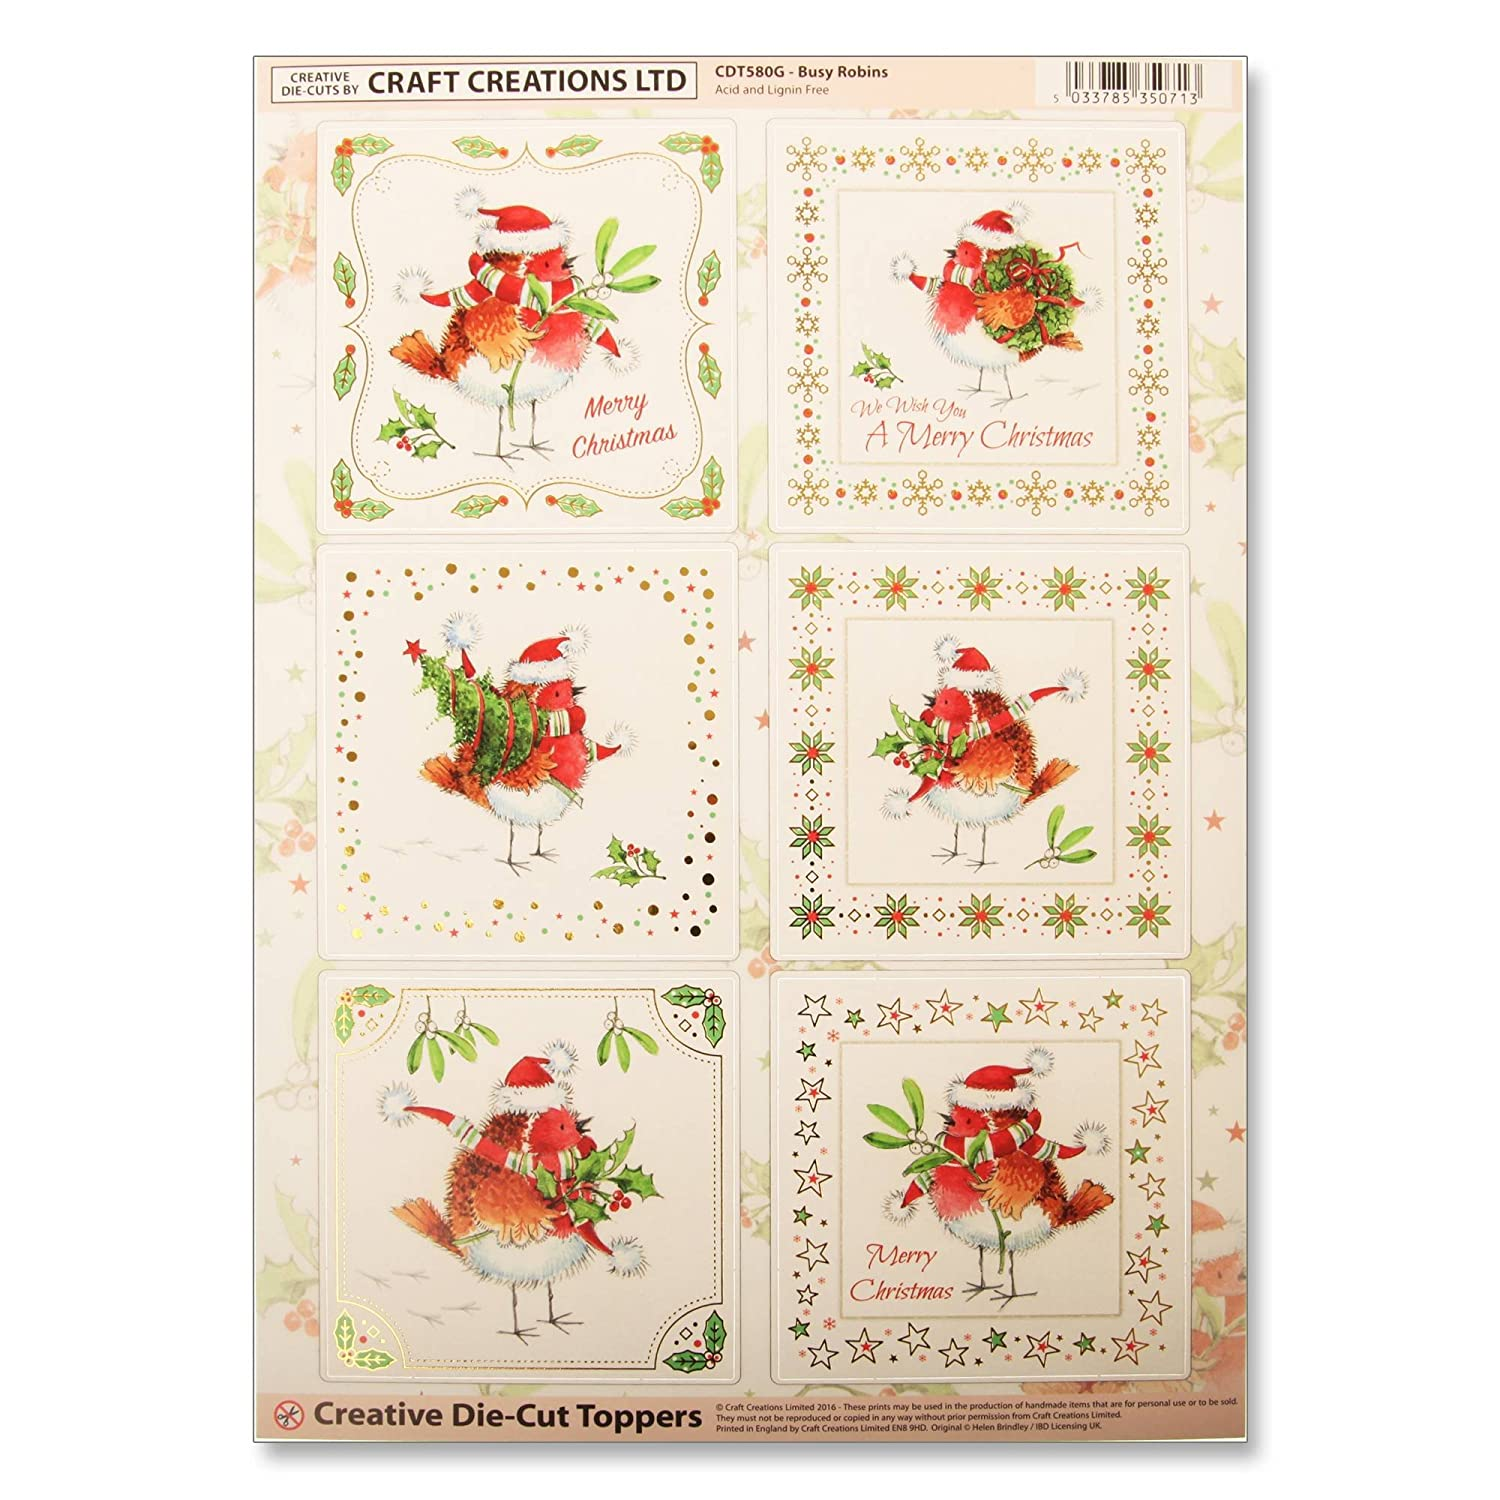 Craft Creations Christmas Creative Die-Cut Card Toppers - CDT580G Busy Robins - Robins In Xmas Hats - Gold Foil Borders - A4 210x297mm 250gsm 300mic Craft Creations Ltd